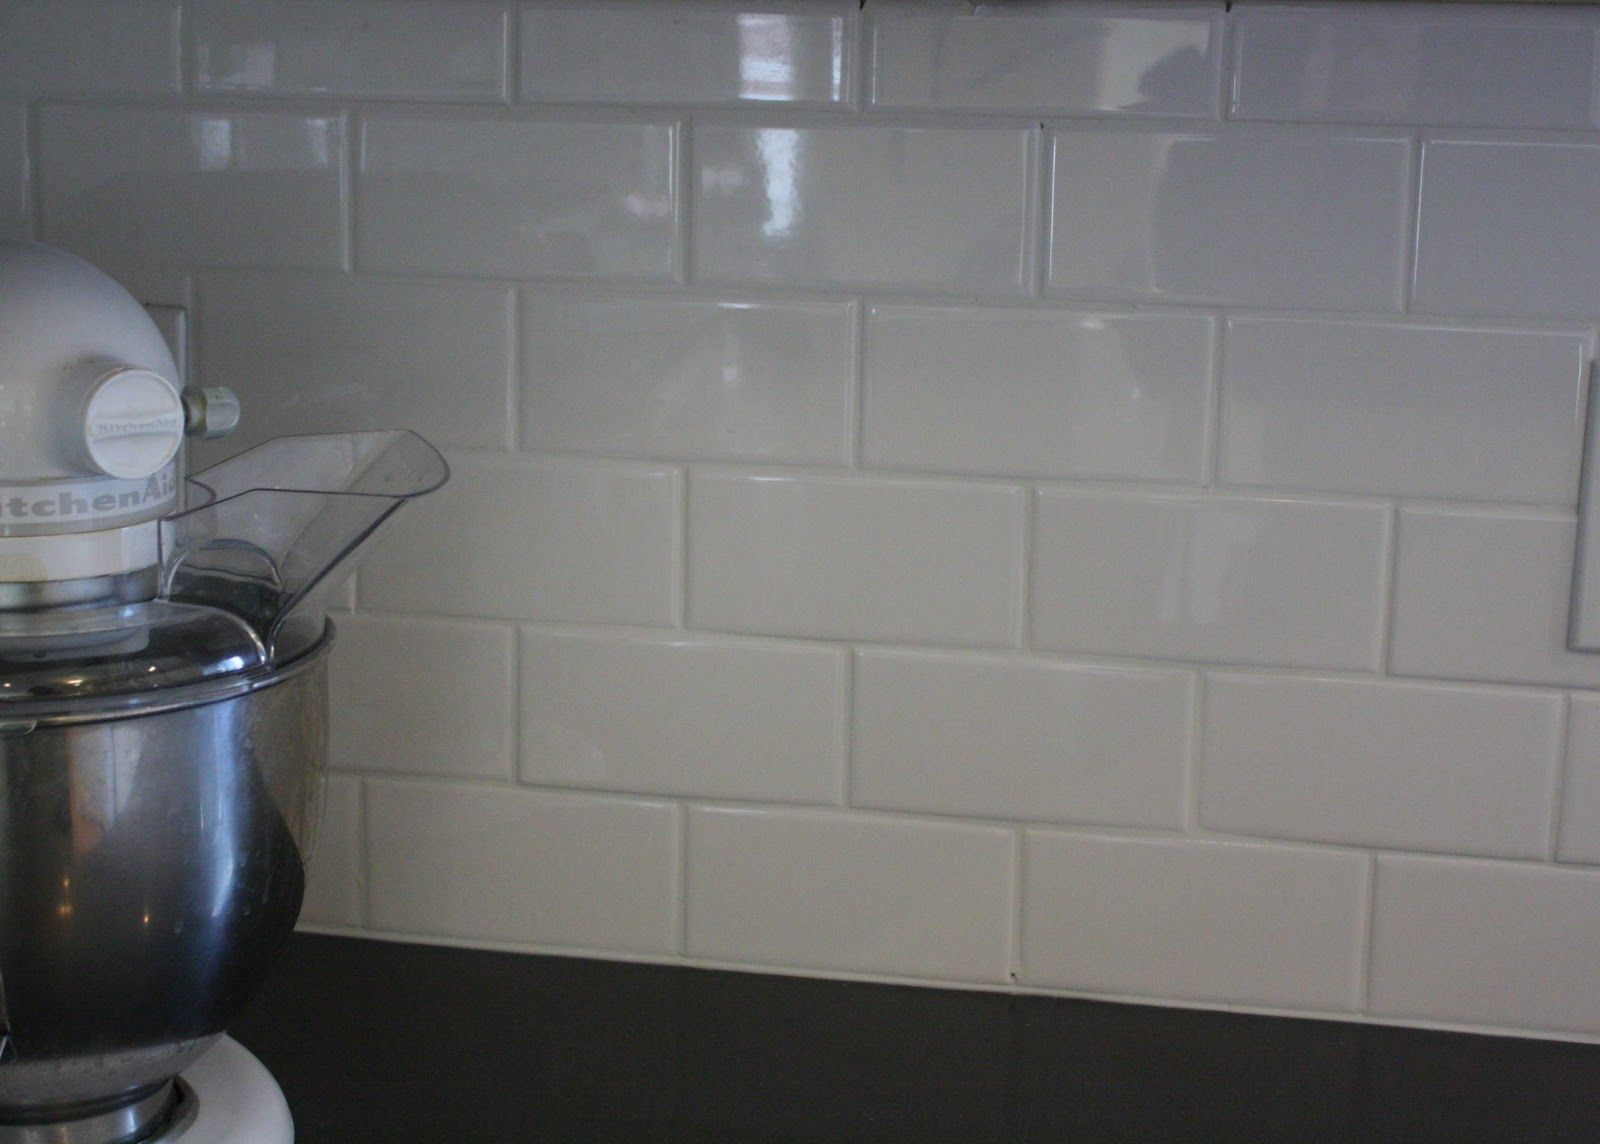 No grout glass tile backsplash love the pure white subway tile no grout glass tile backsplash love the pure white subway tile backsplash but with the dailygadgetfo Image collections